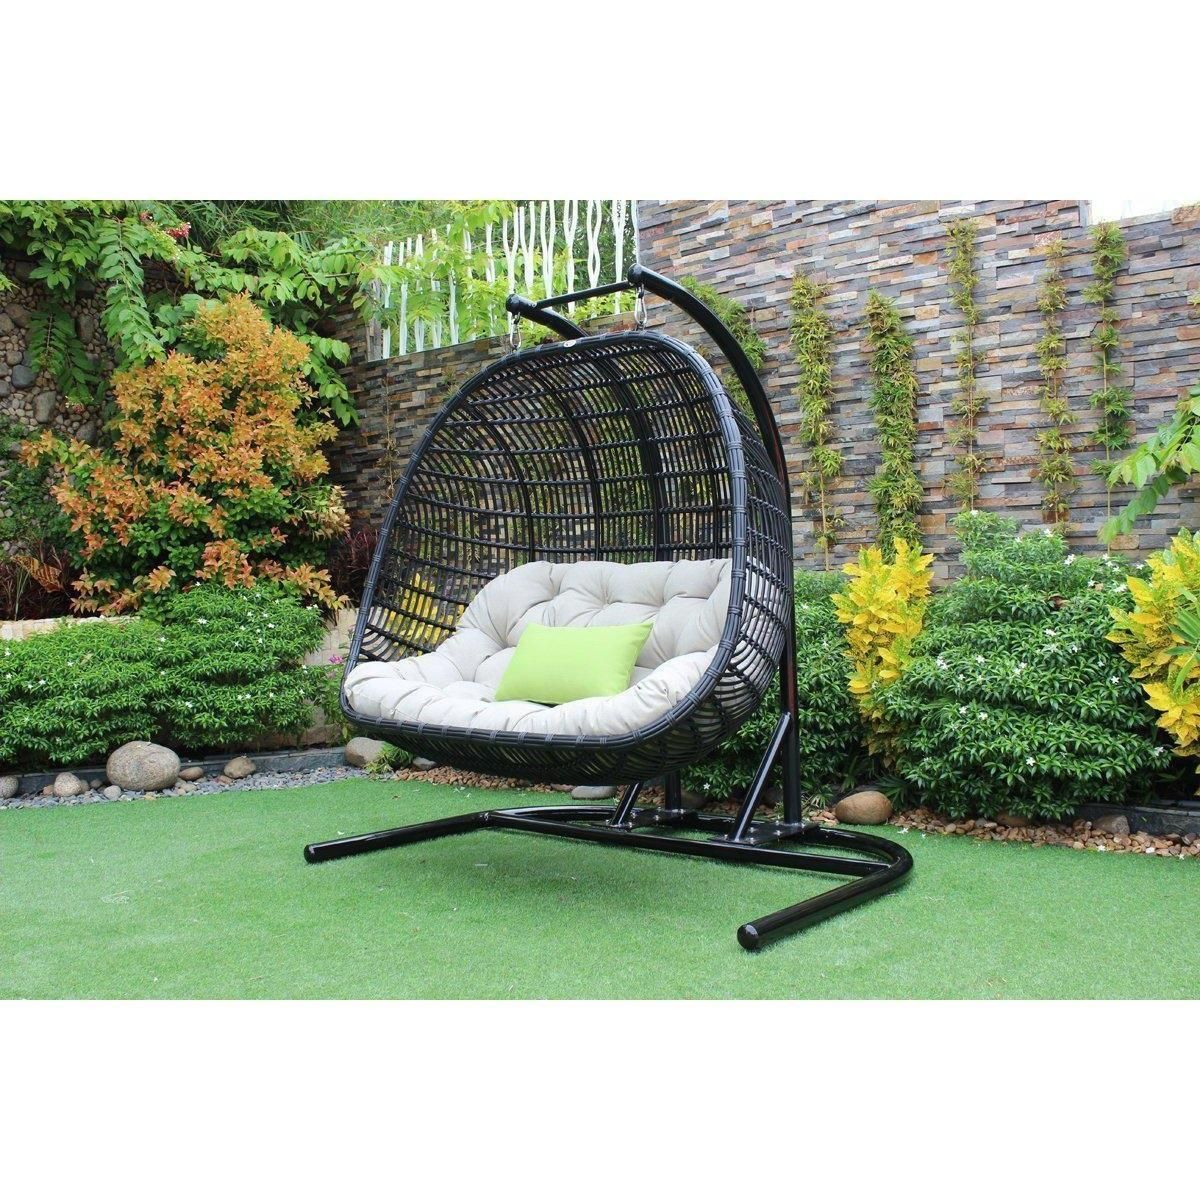 Renava san juan outdoor black u beige hanging chair hanging chair